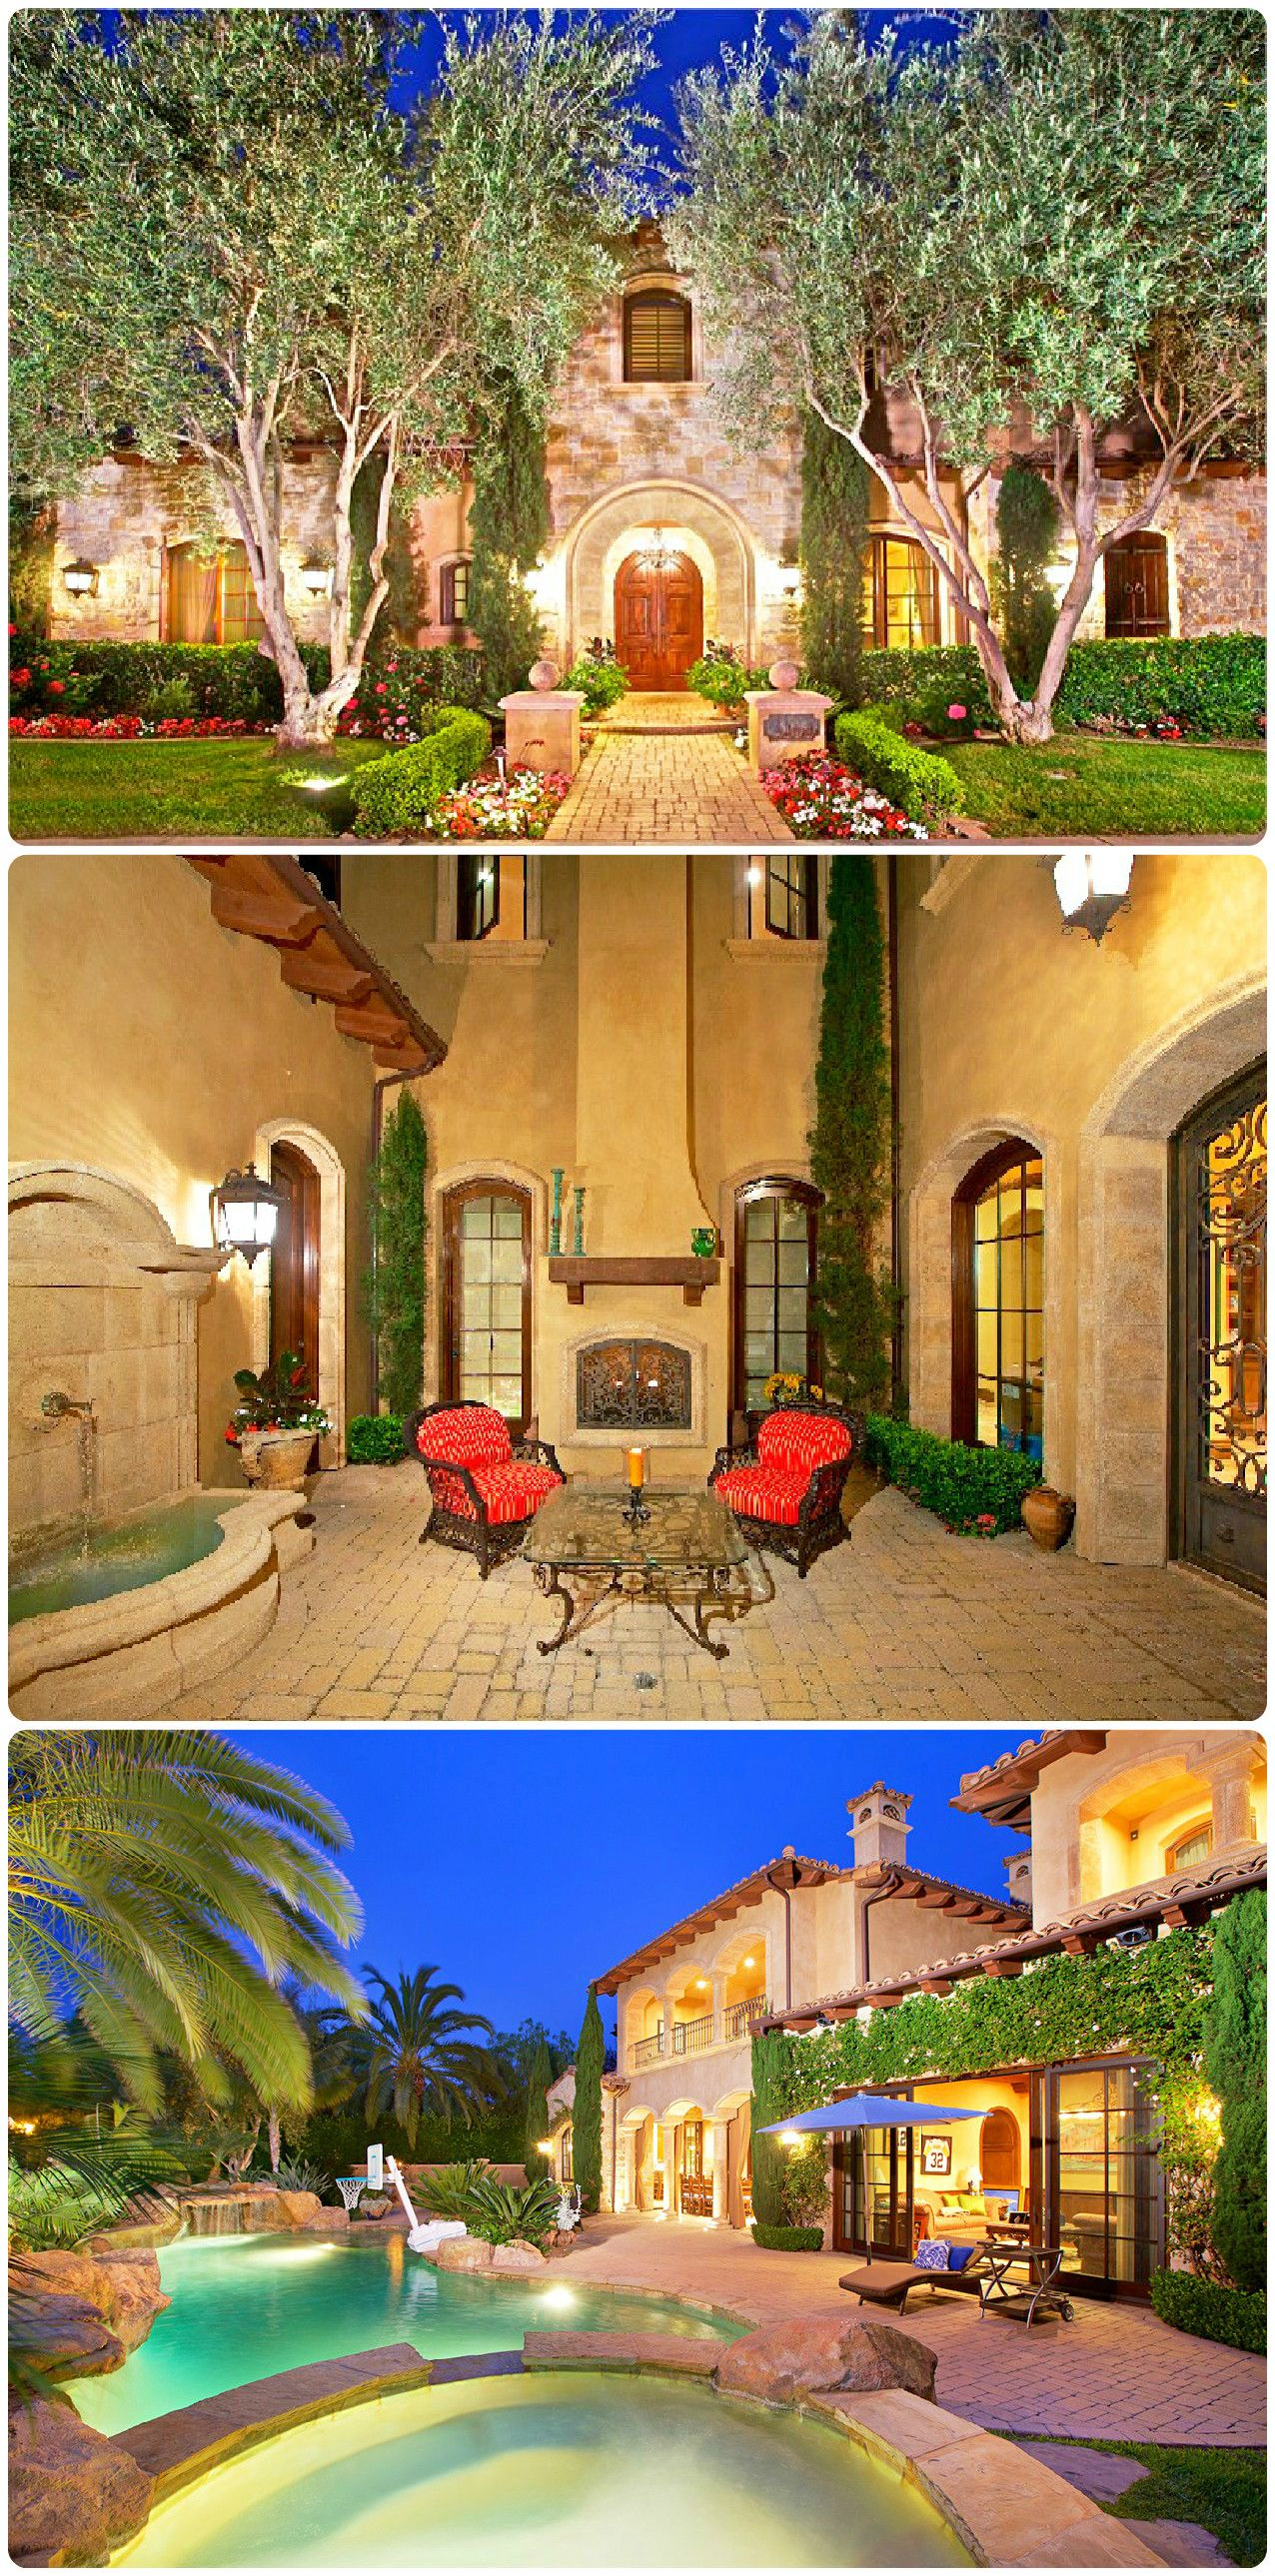 impeccable tuscan villa feautring private courtyard with fountain